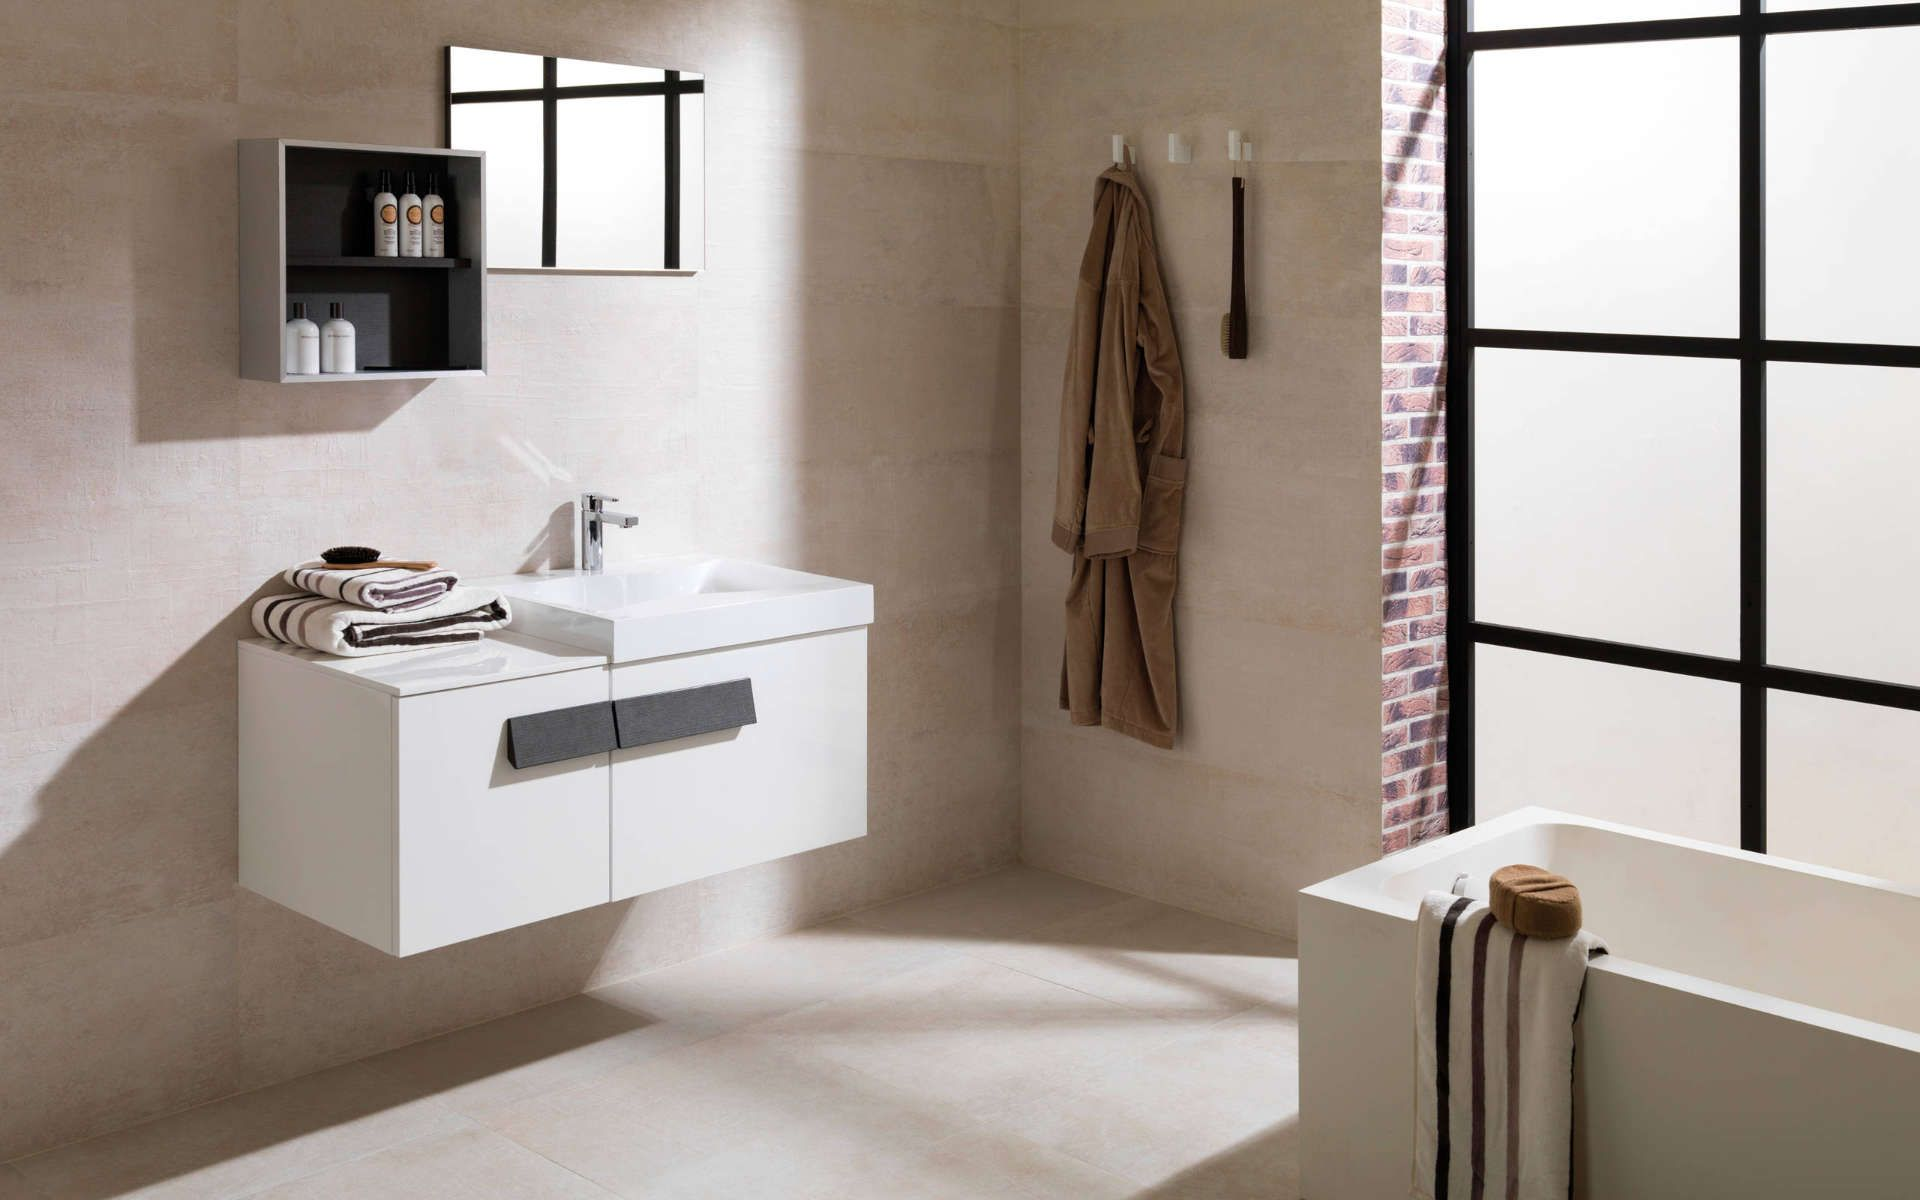 Mobilier De Salle De Bain Meubles De Salle De Bain Porcelanosa Bathroom Furniture Furniture Bathroom